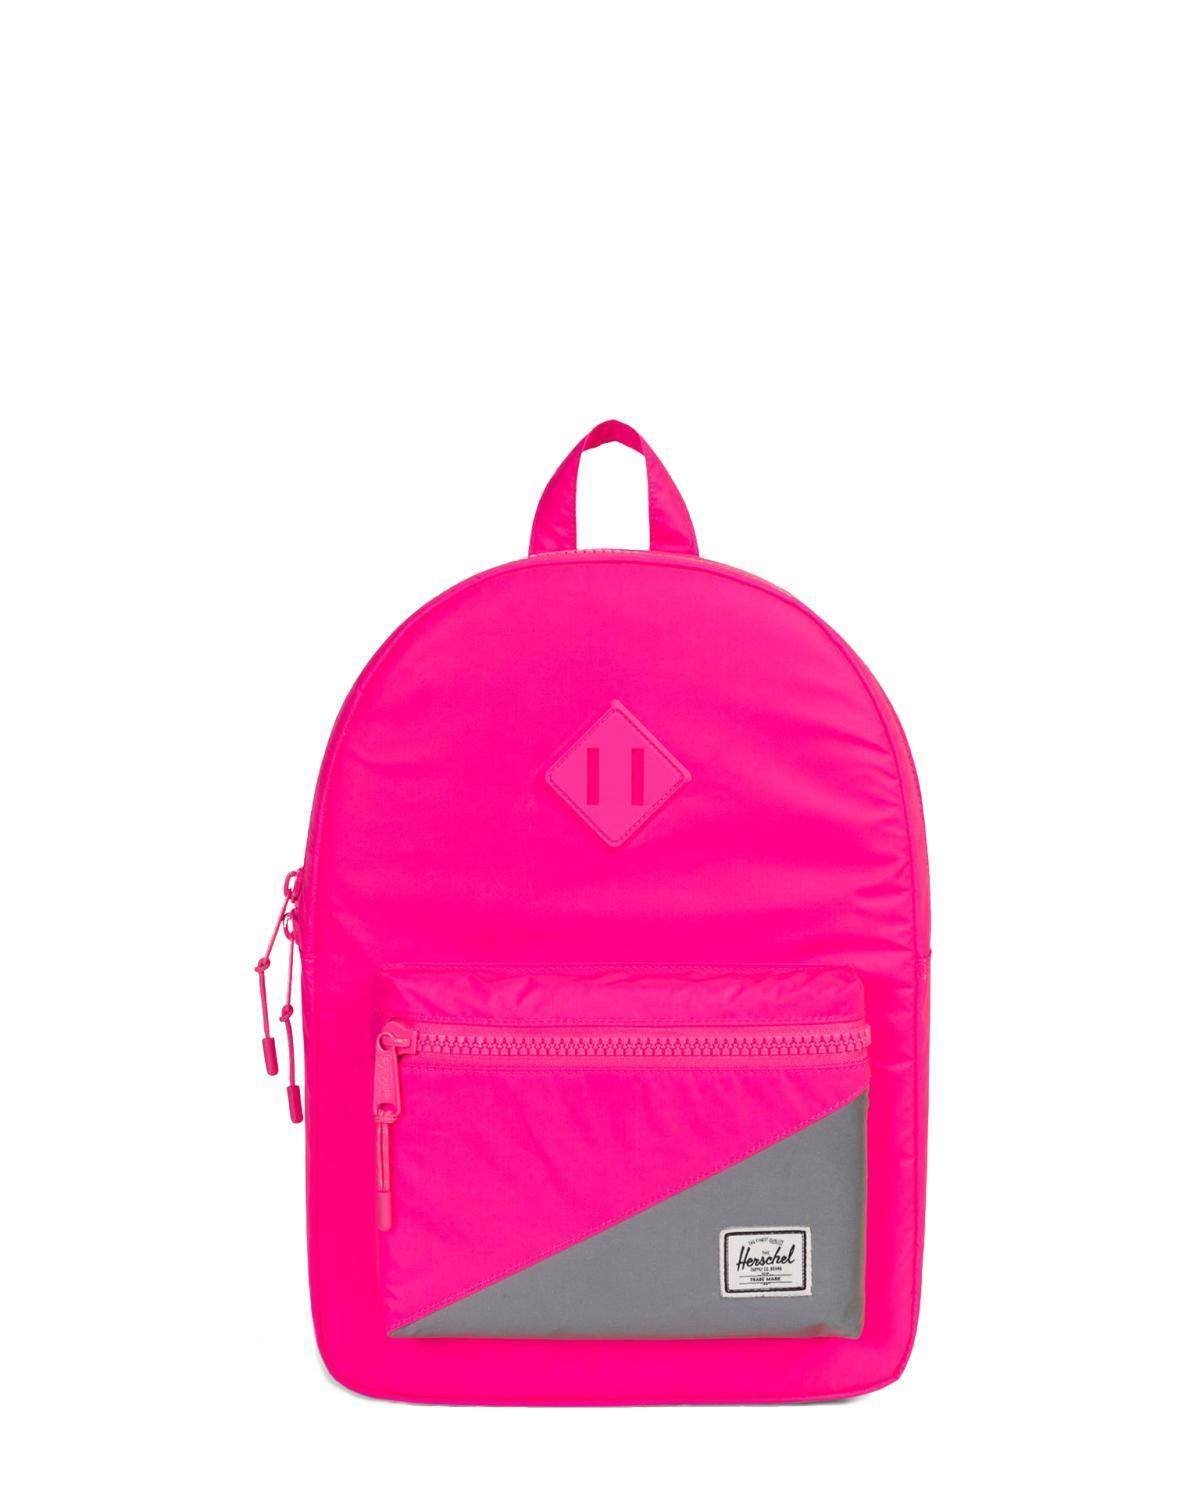 4acaee7524 Little herschel supply co accessories youth heritage backpack in neon pink